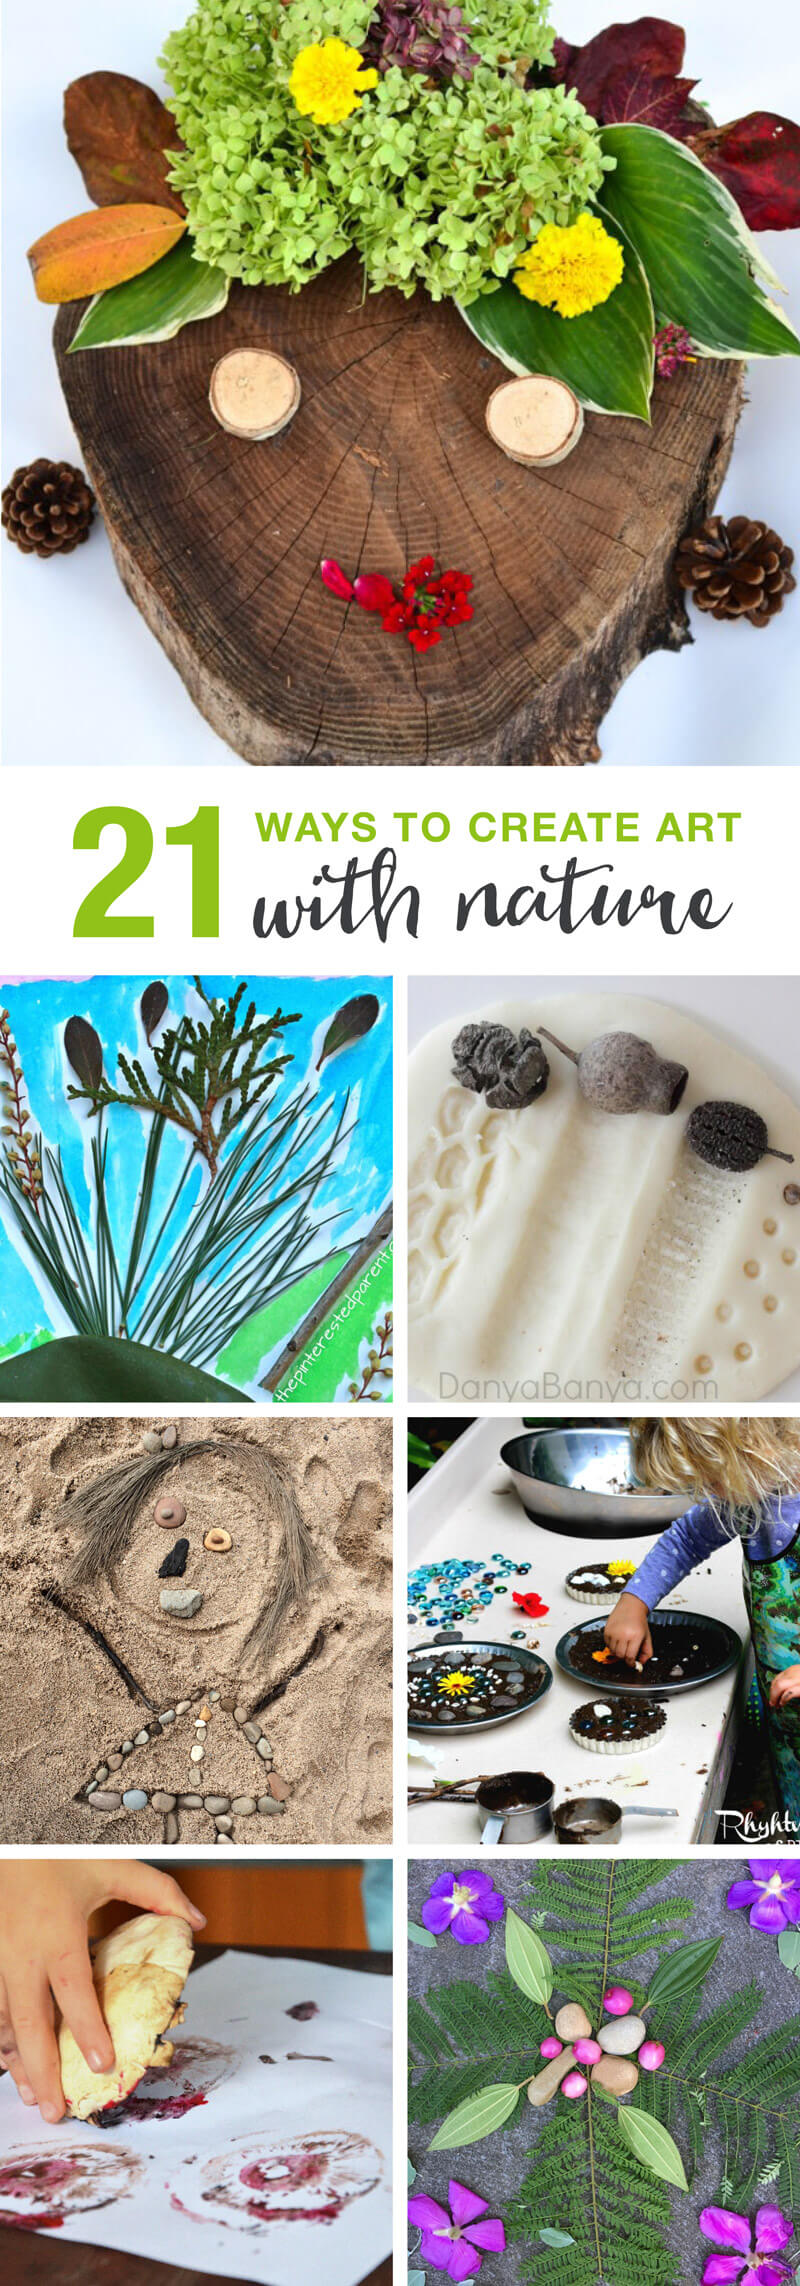 21 ways for kids to create art using nature